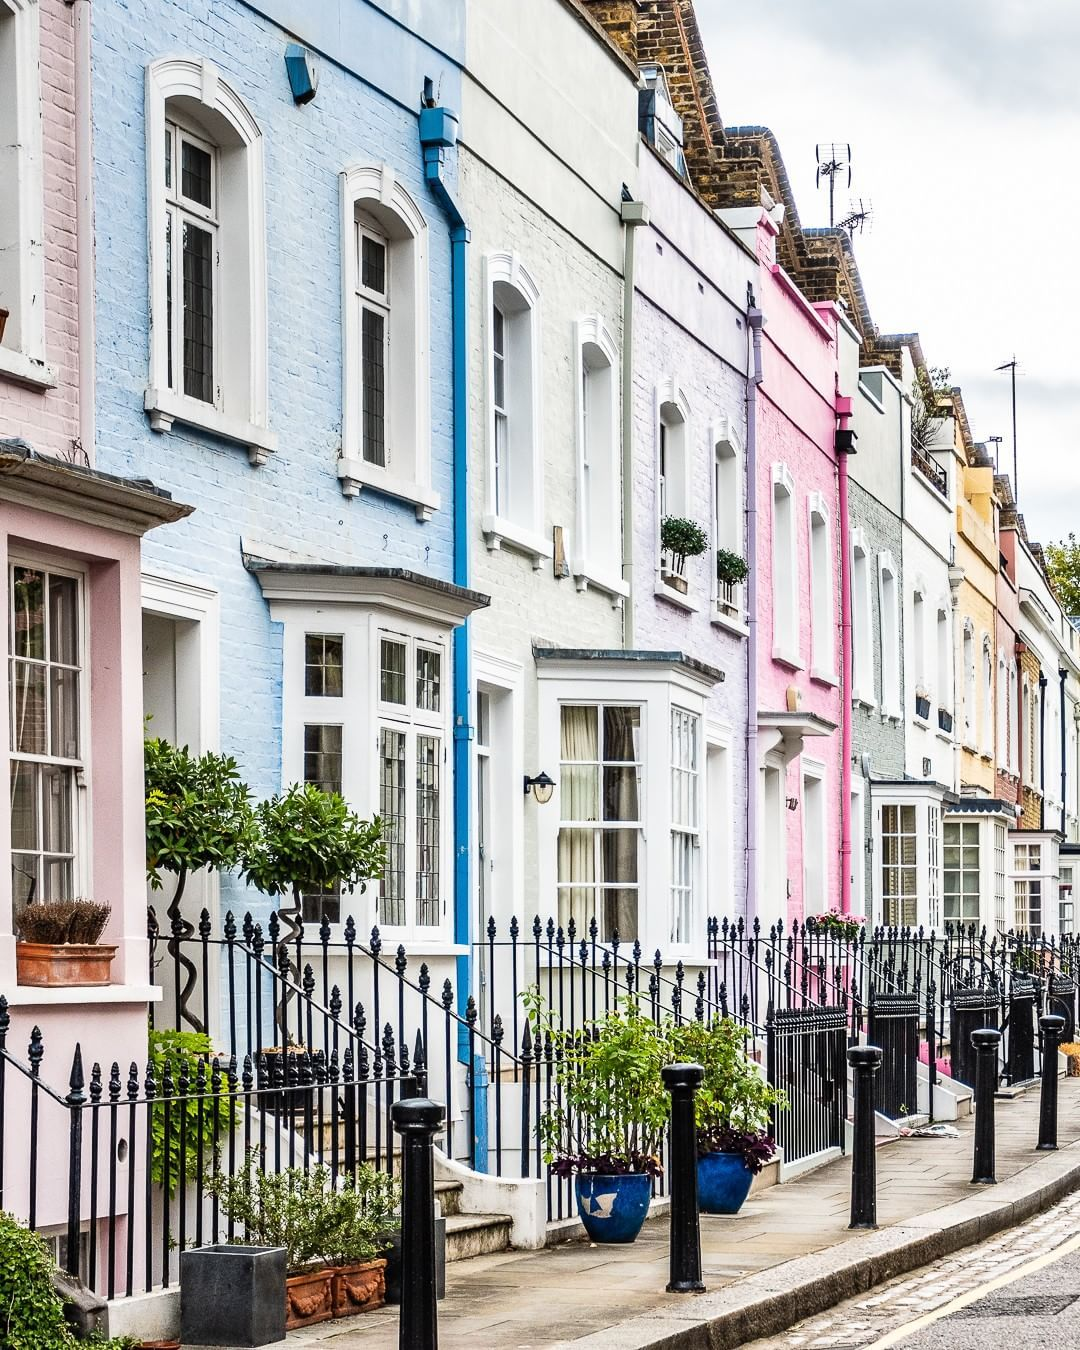 A Row Of Pastel Houses Lining A Street In Chelsea London This Is One Of The Best Places In London To Best Places In London Travel Guide London London Travel